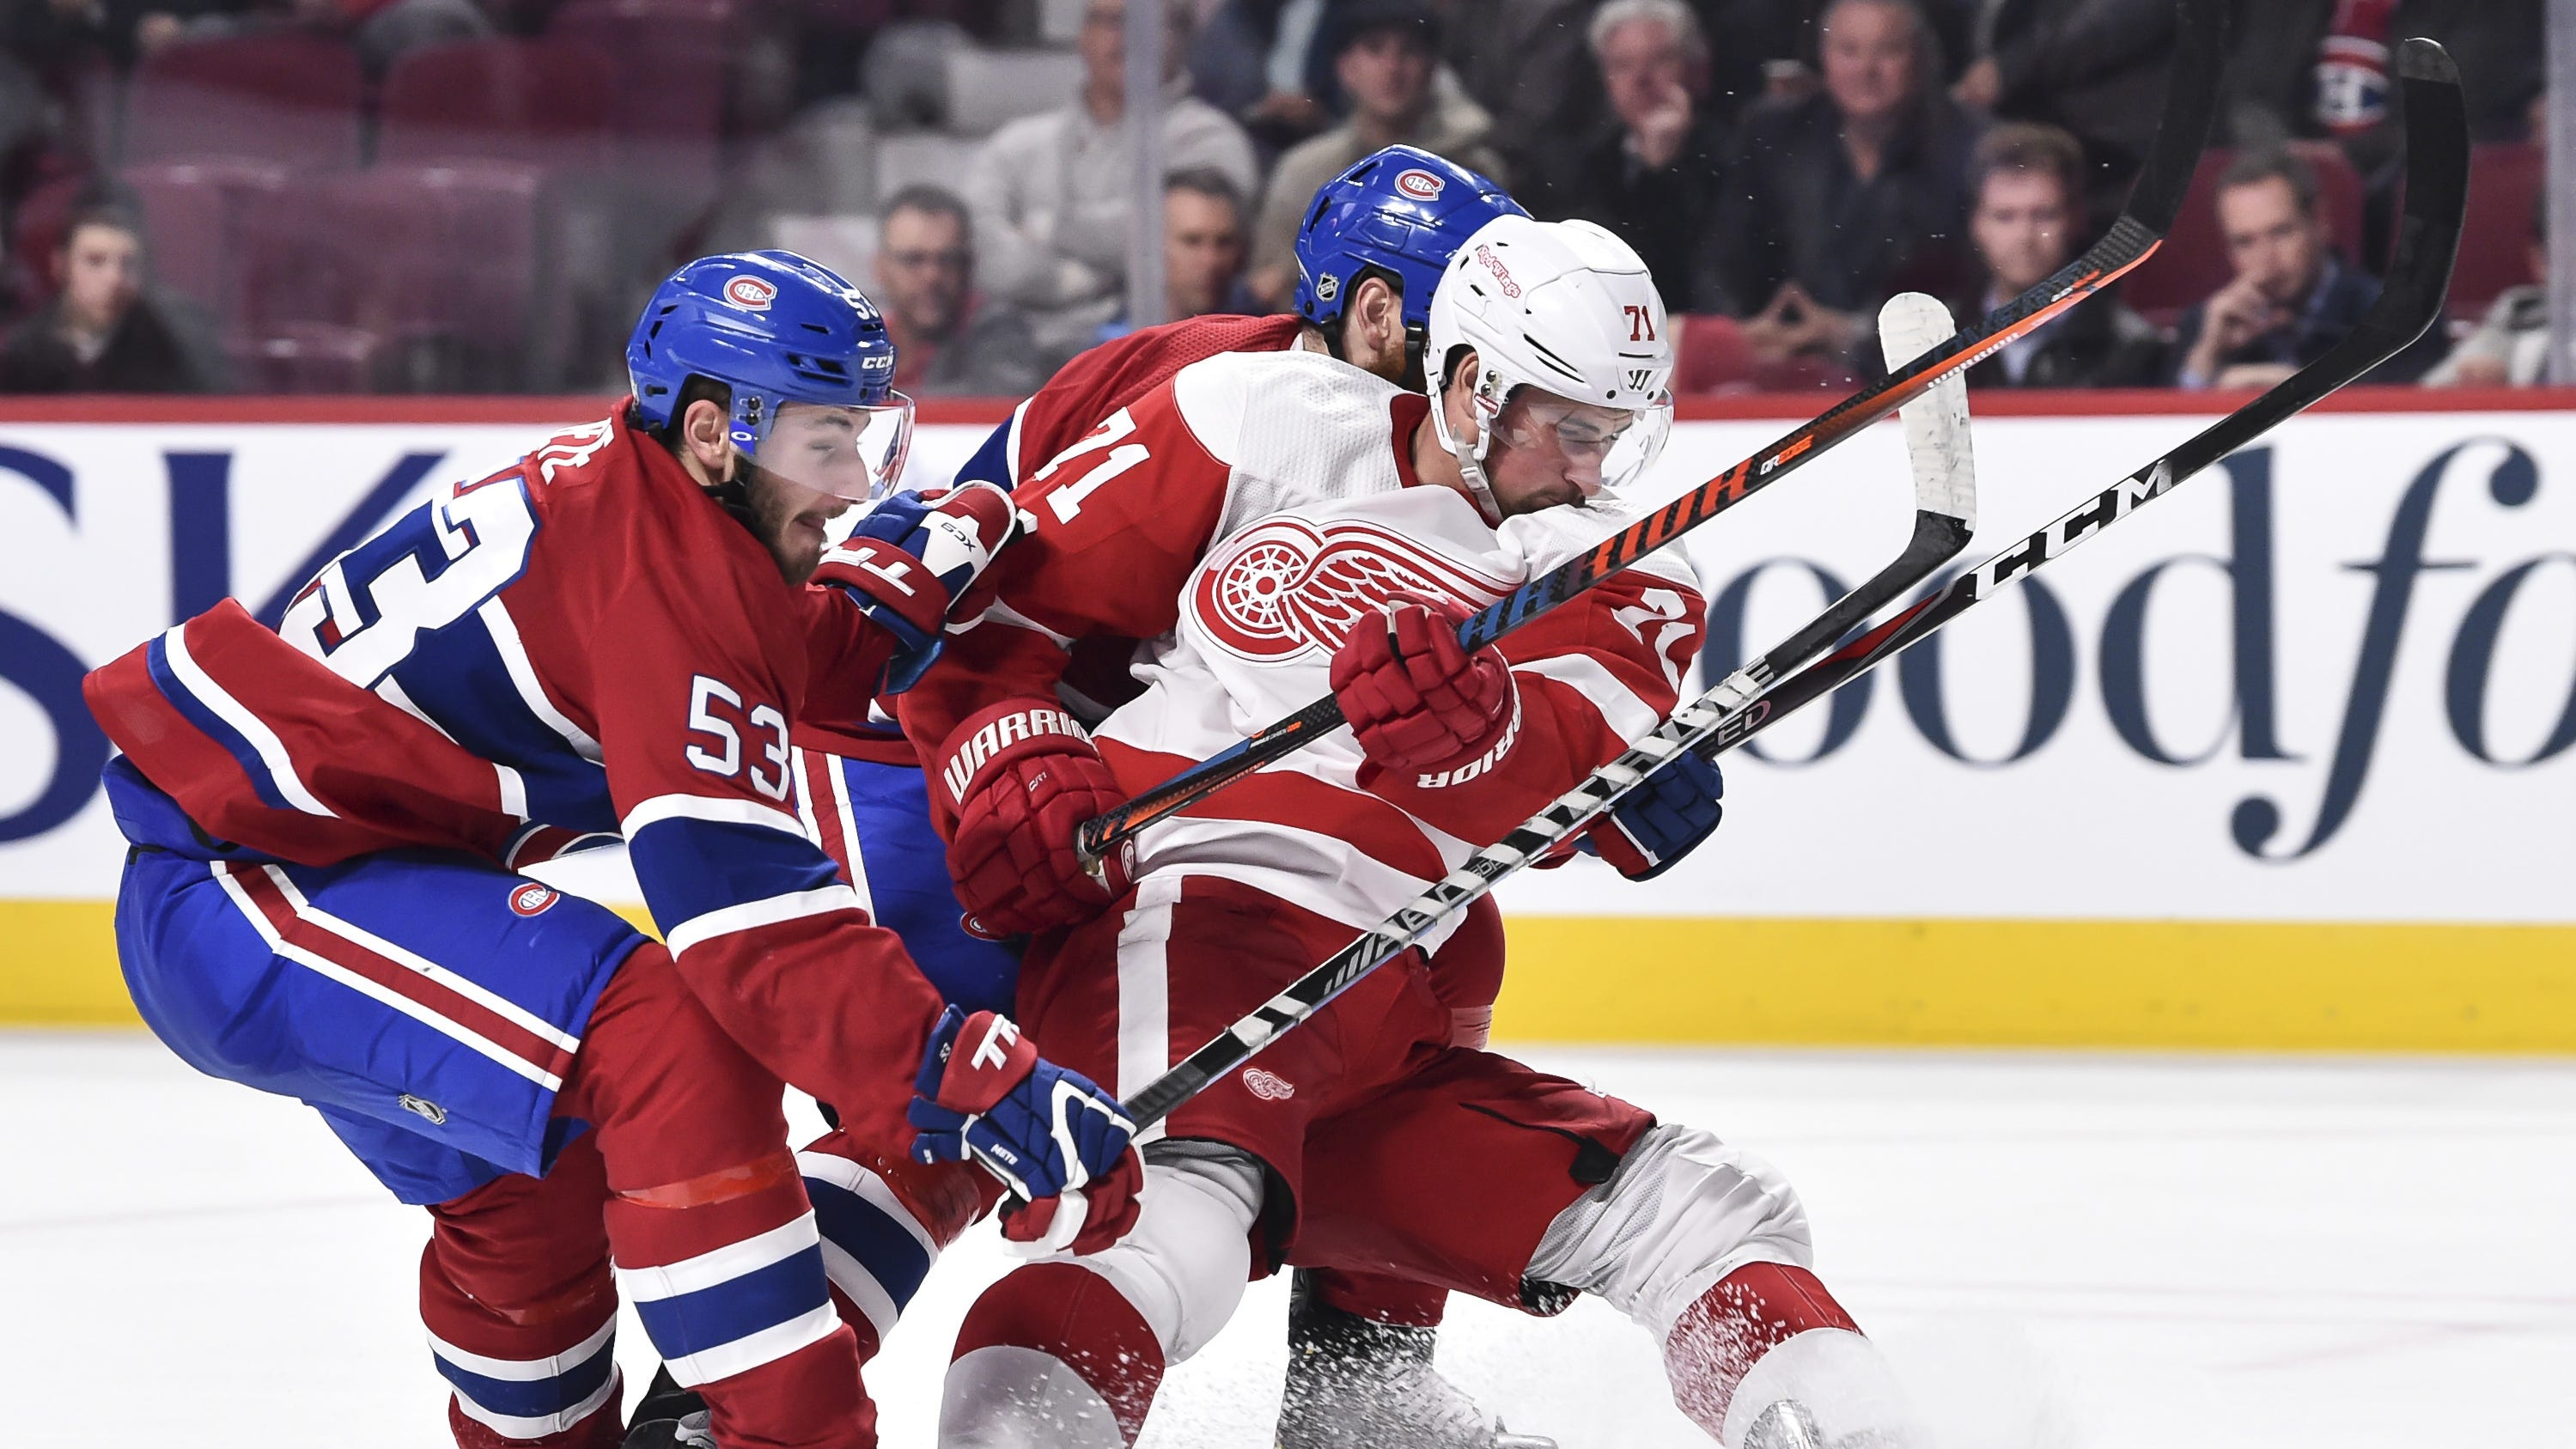 Body language is part of why Detroit Red Wings are winless. Here's why